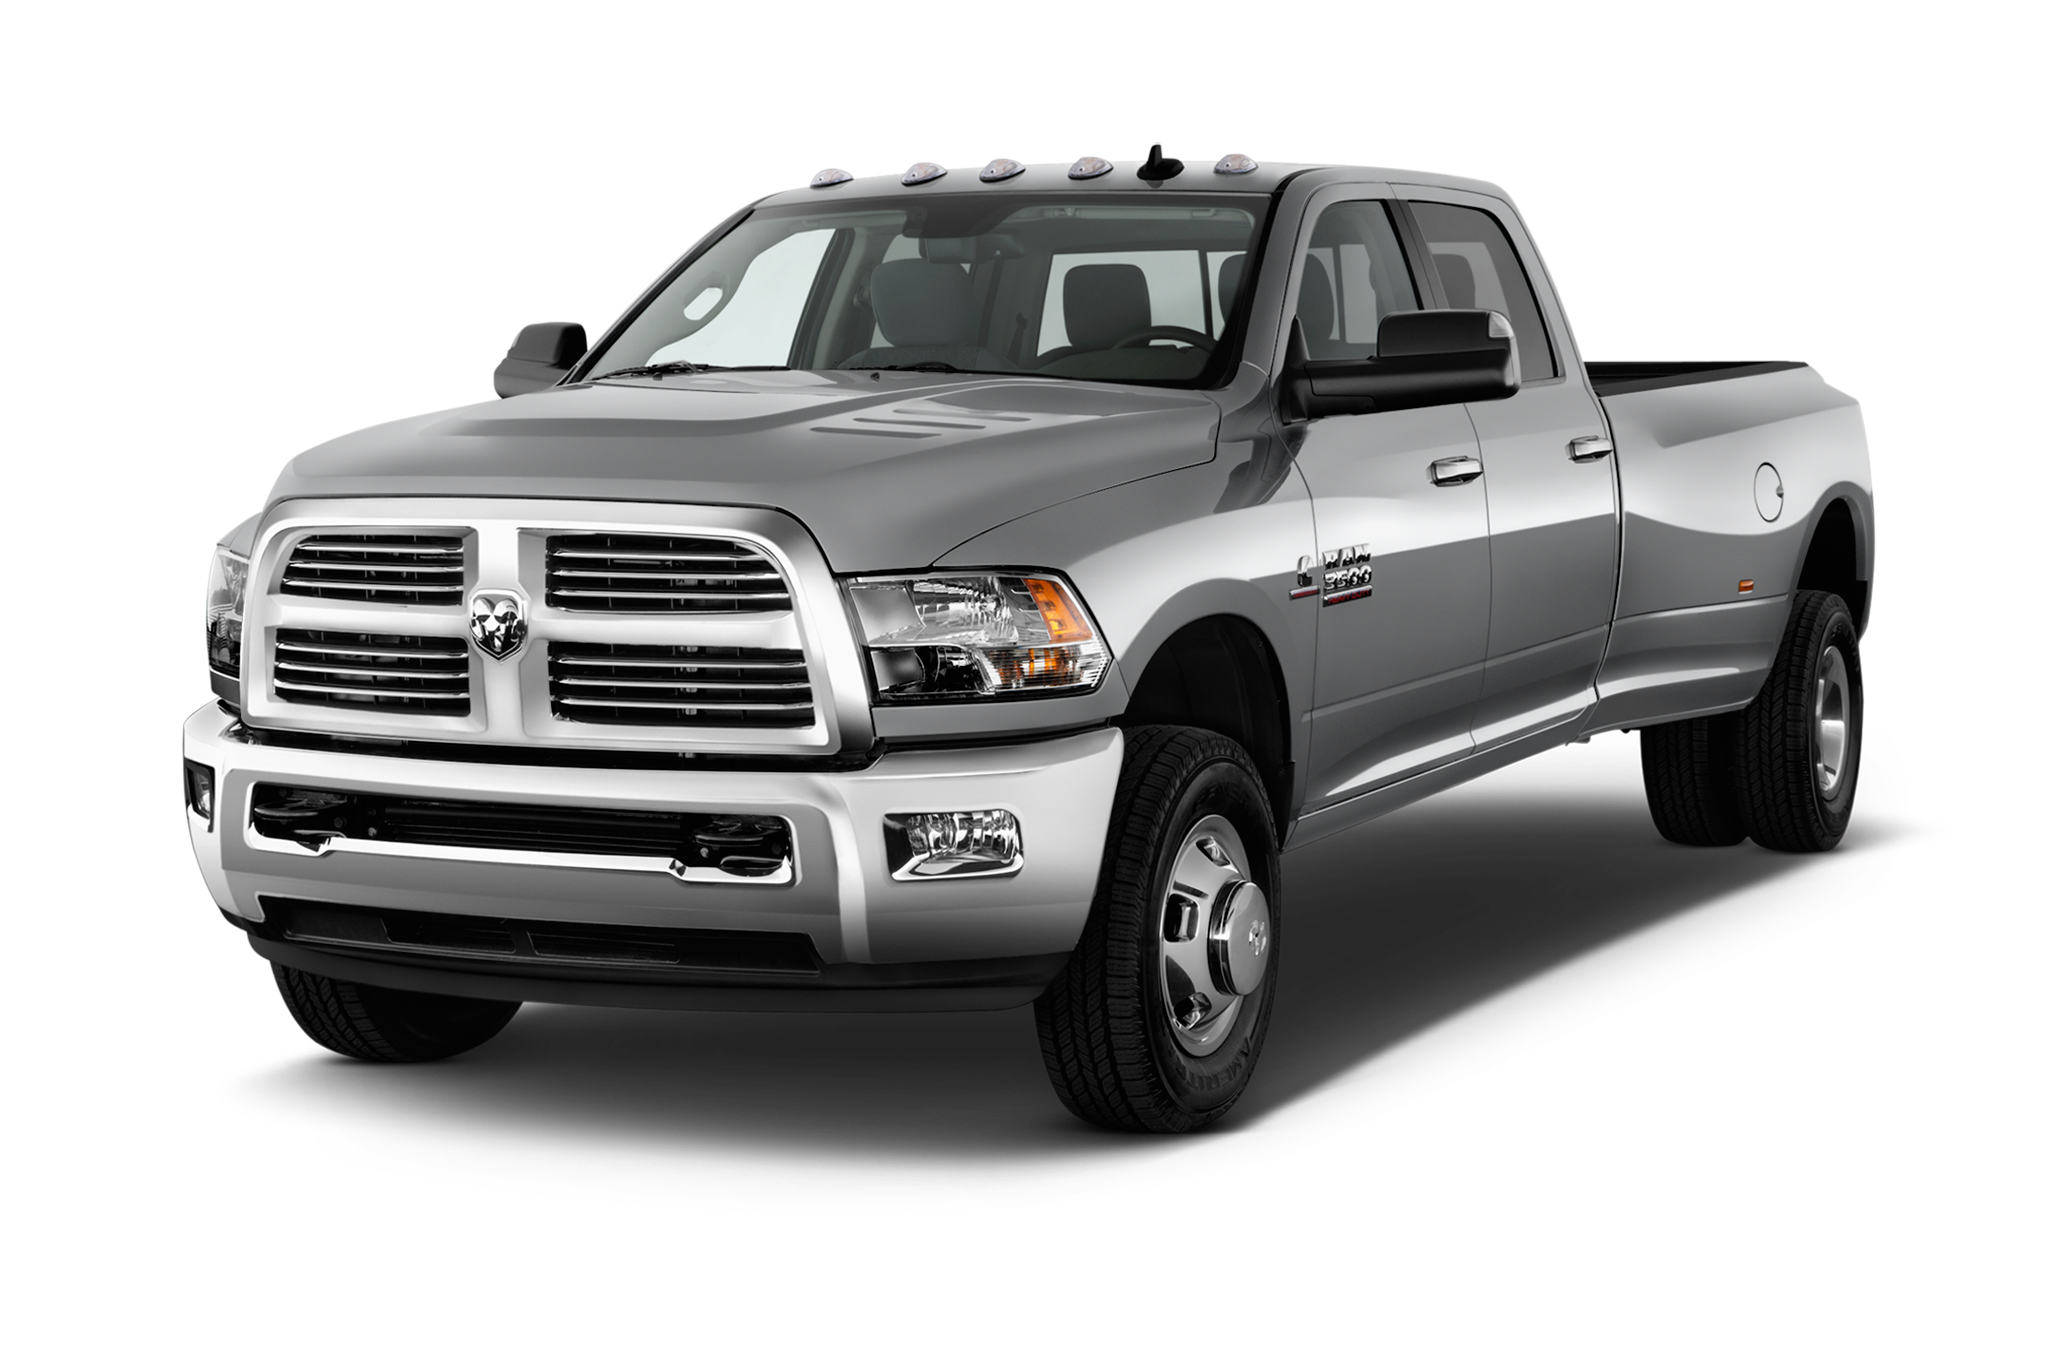 truck pickup aalilpy international prices for overview intl ram dodge sale